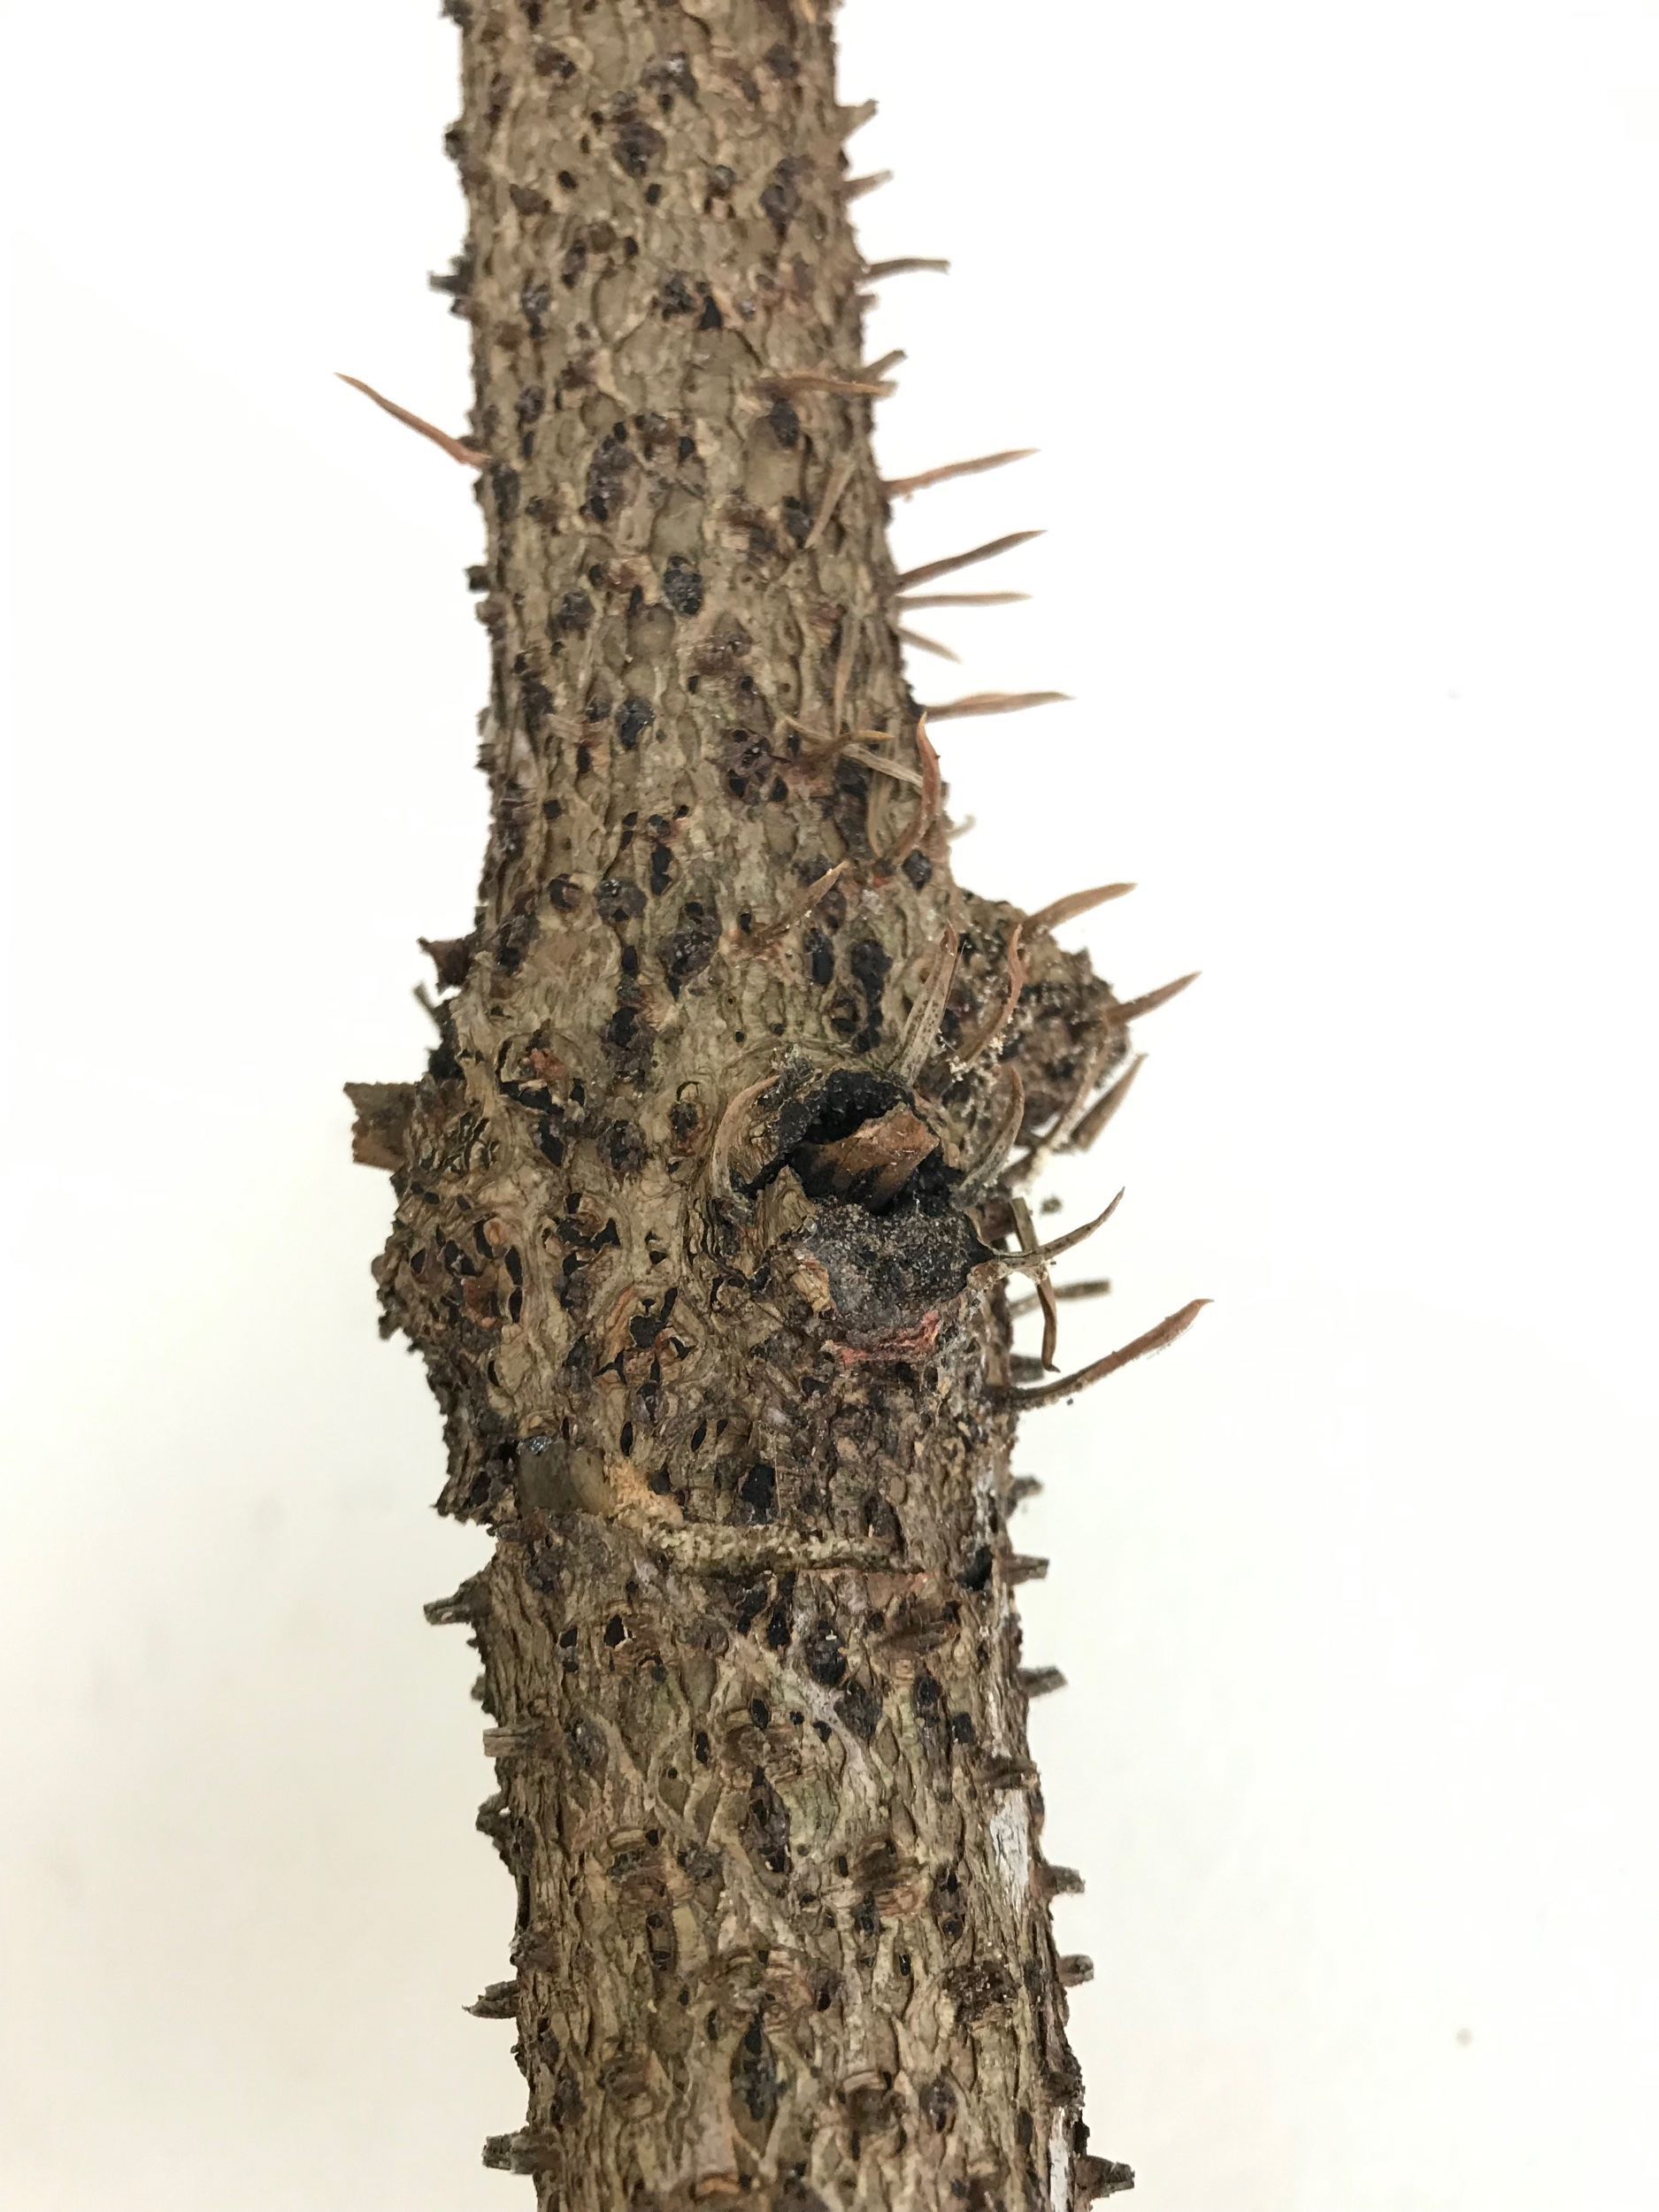 Very interesting trunk of bark with a trunk of thorns.